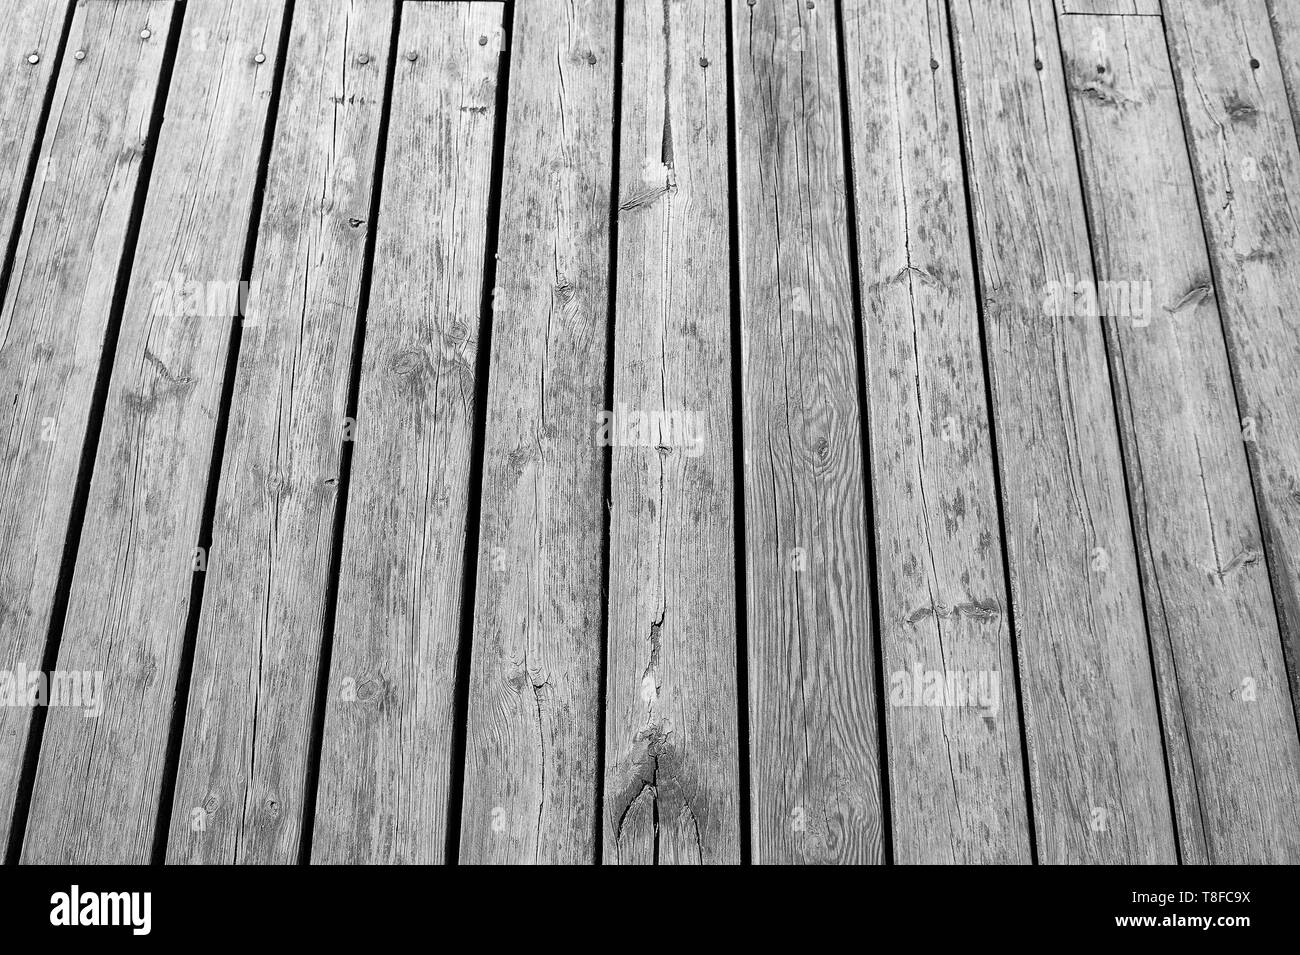 abstract textured wooden or timber background grey color, wood parquet or laminate with nobody - Stock Image